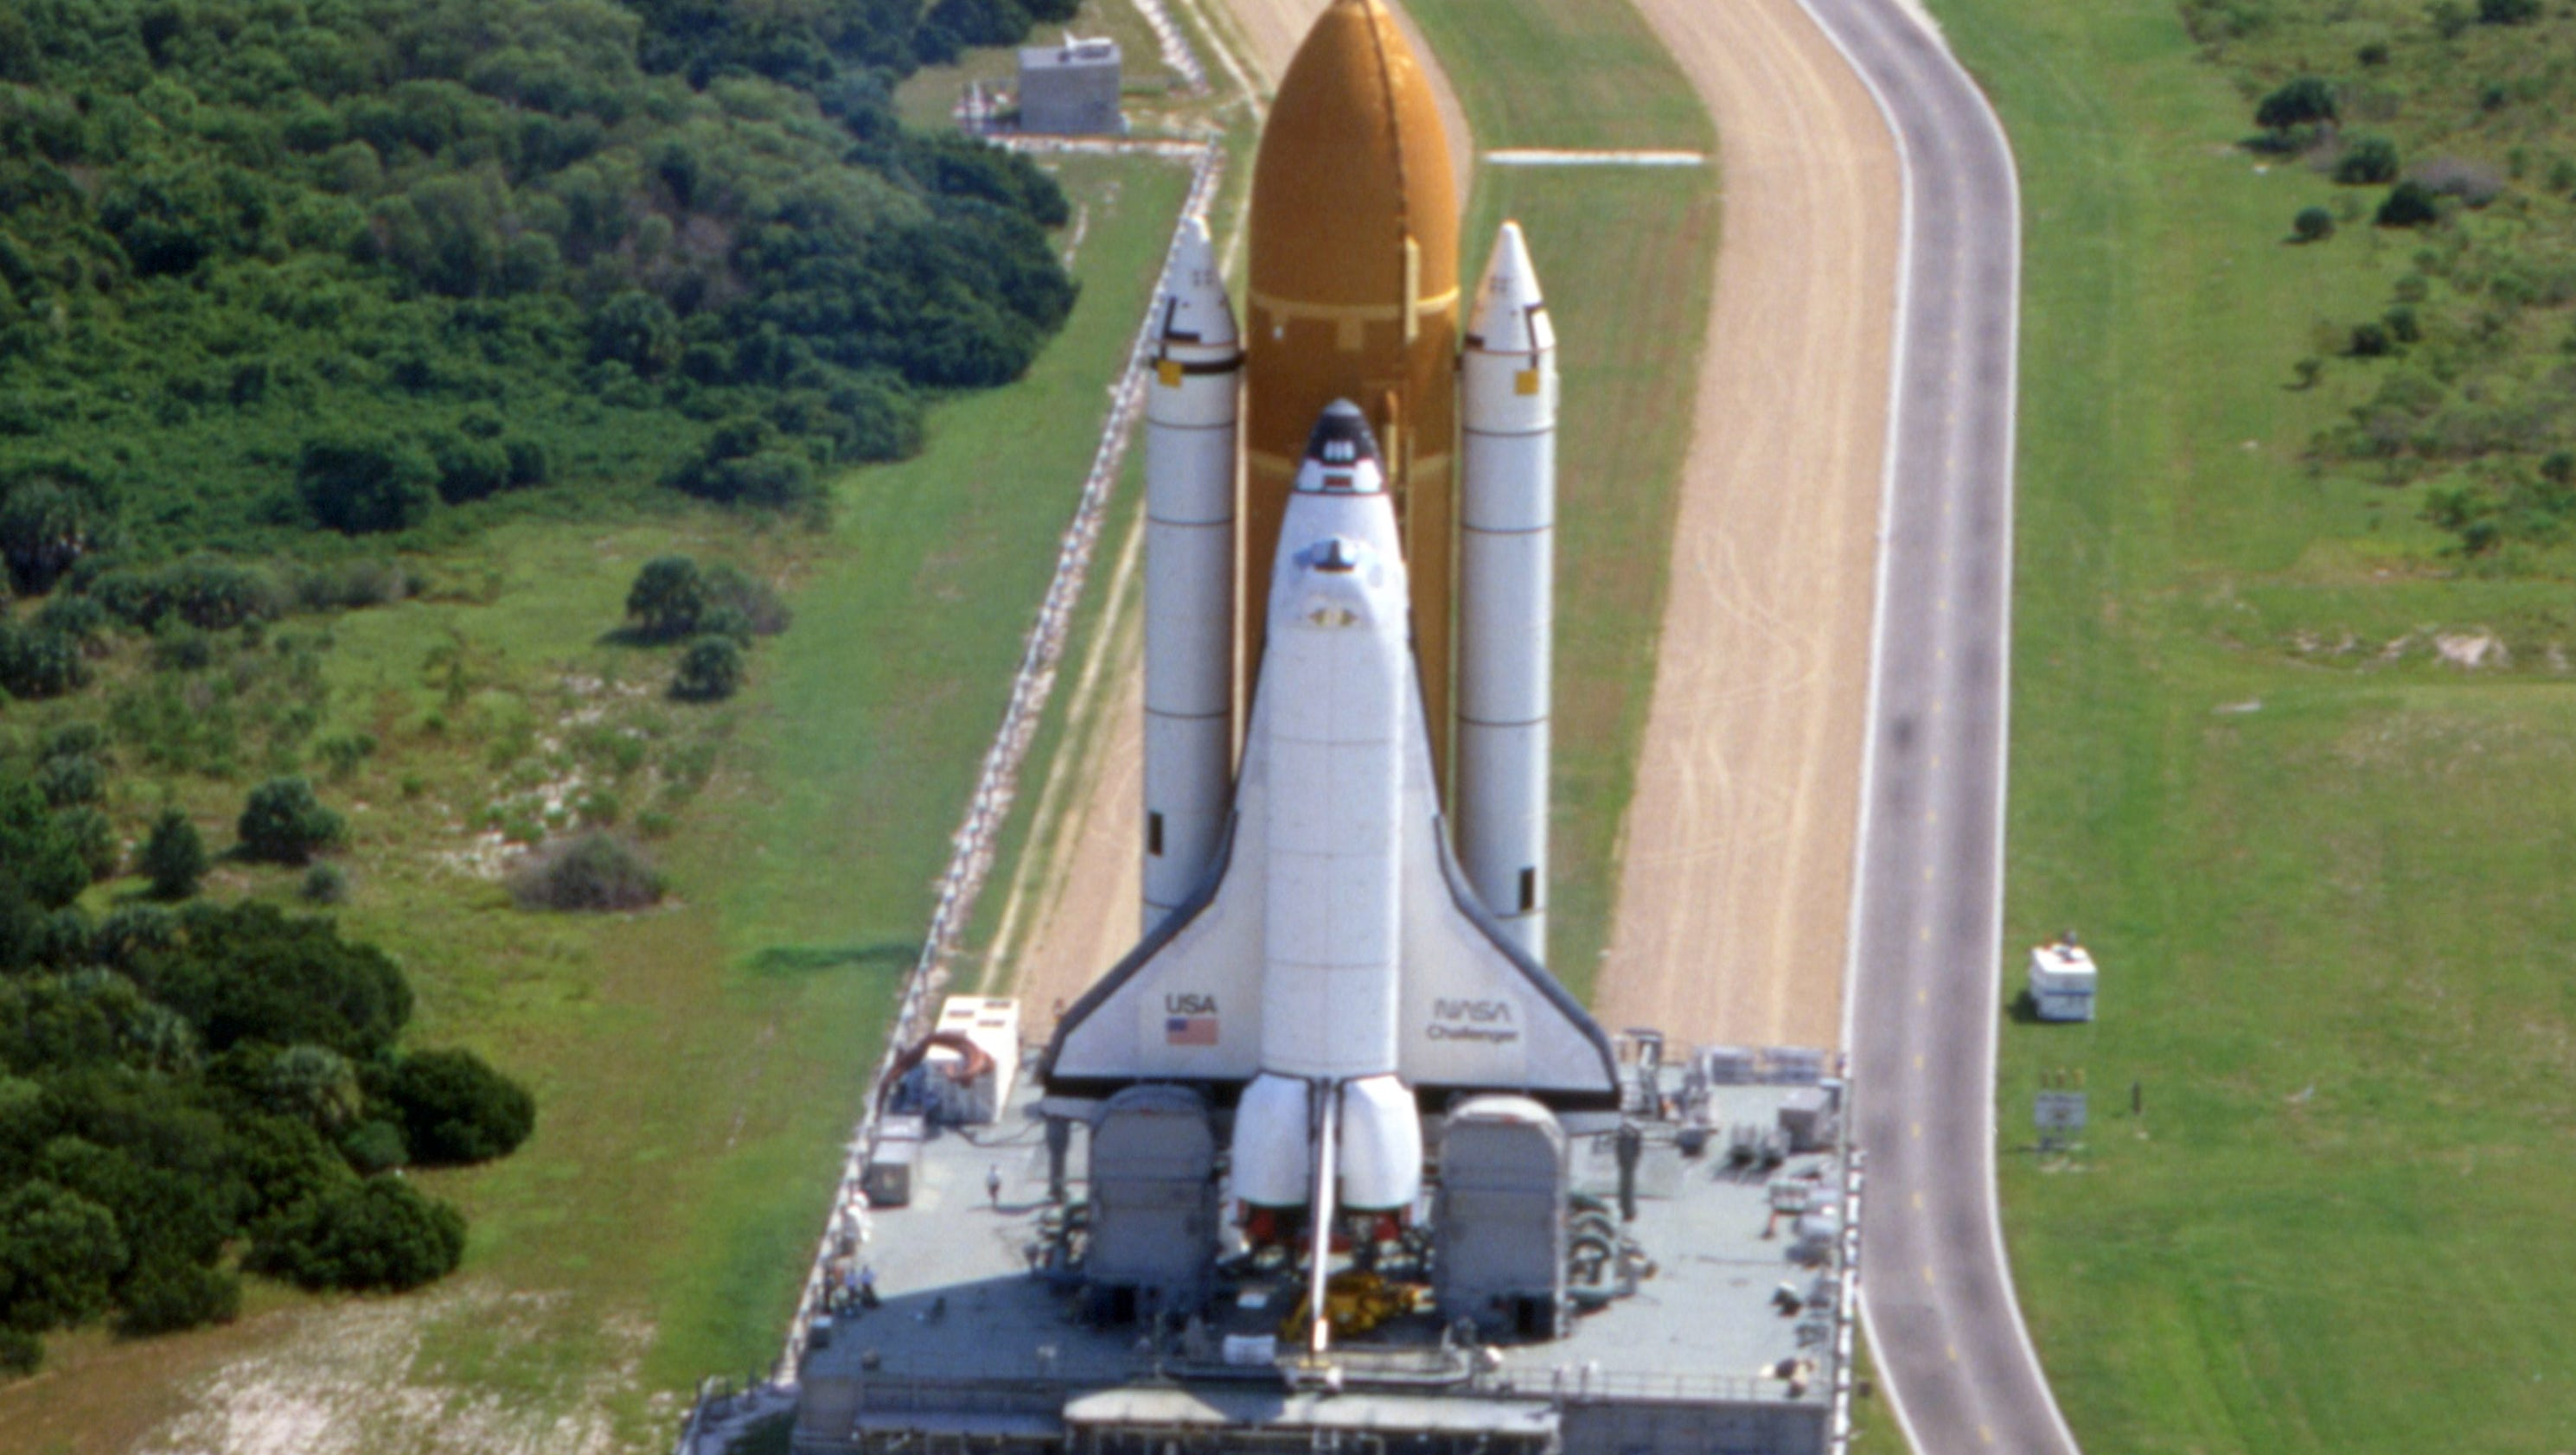 group decision fiascos continue space shuttle challenger and a revised groupthink framework View group_decision_fiascoes_continue_space space shuttle challenger and a revised groupthink framework group_decision_fiascoes_continue_space_shuttle.